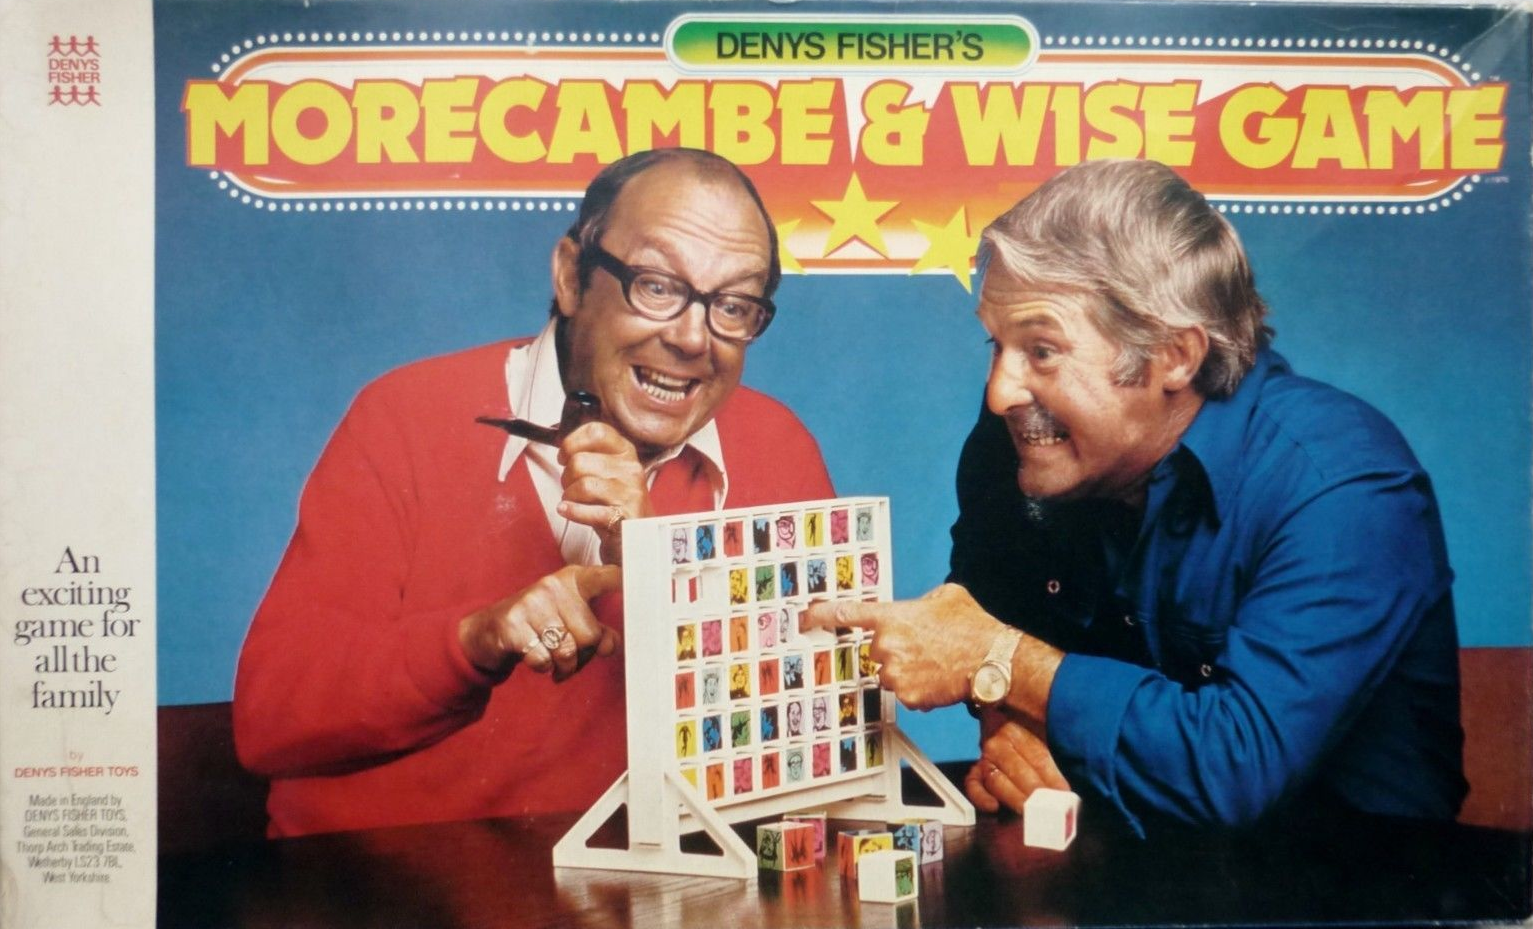 The Morecambe And Wise Game by Denys Fisher - listen to Stephen O'Brien and Tim Worthington talking about it in Looks Unfamiliar.